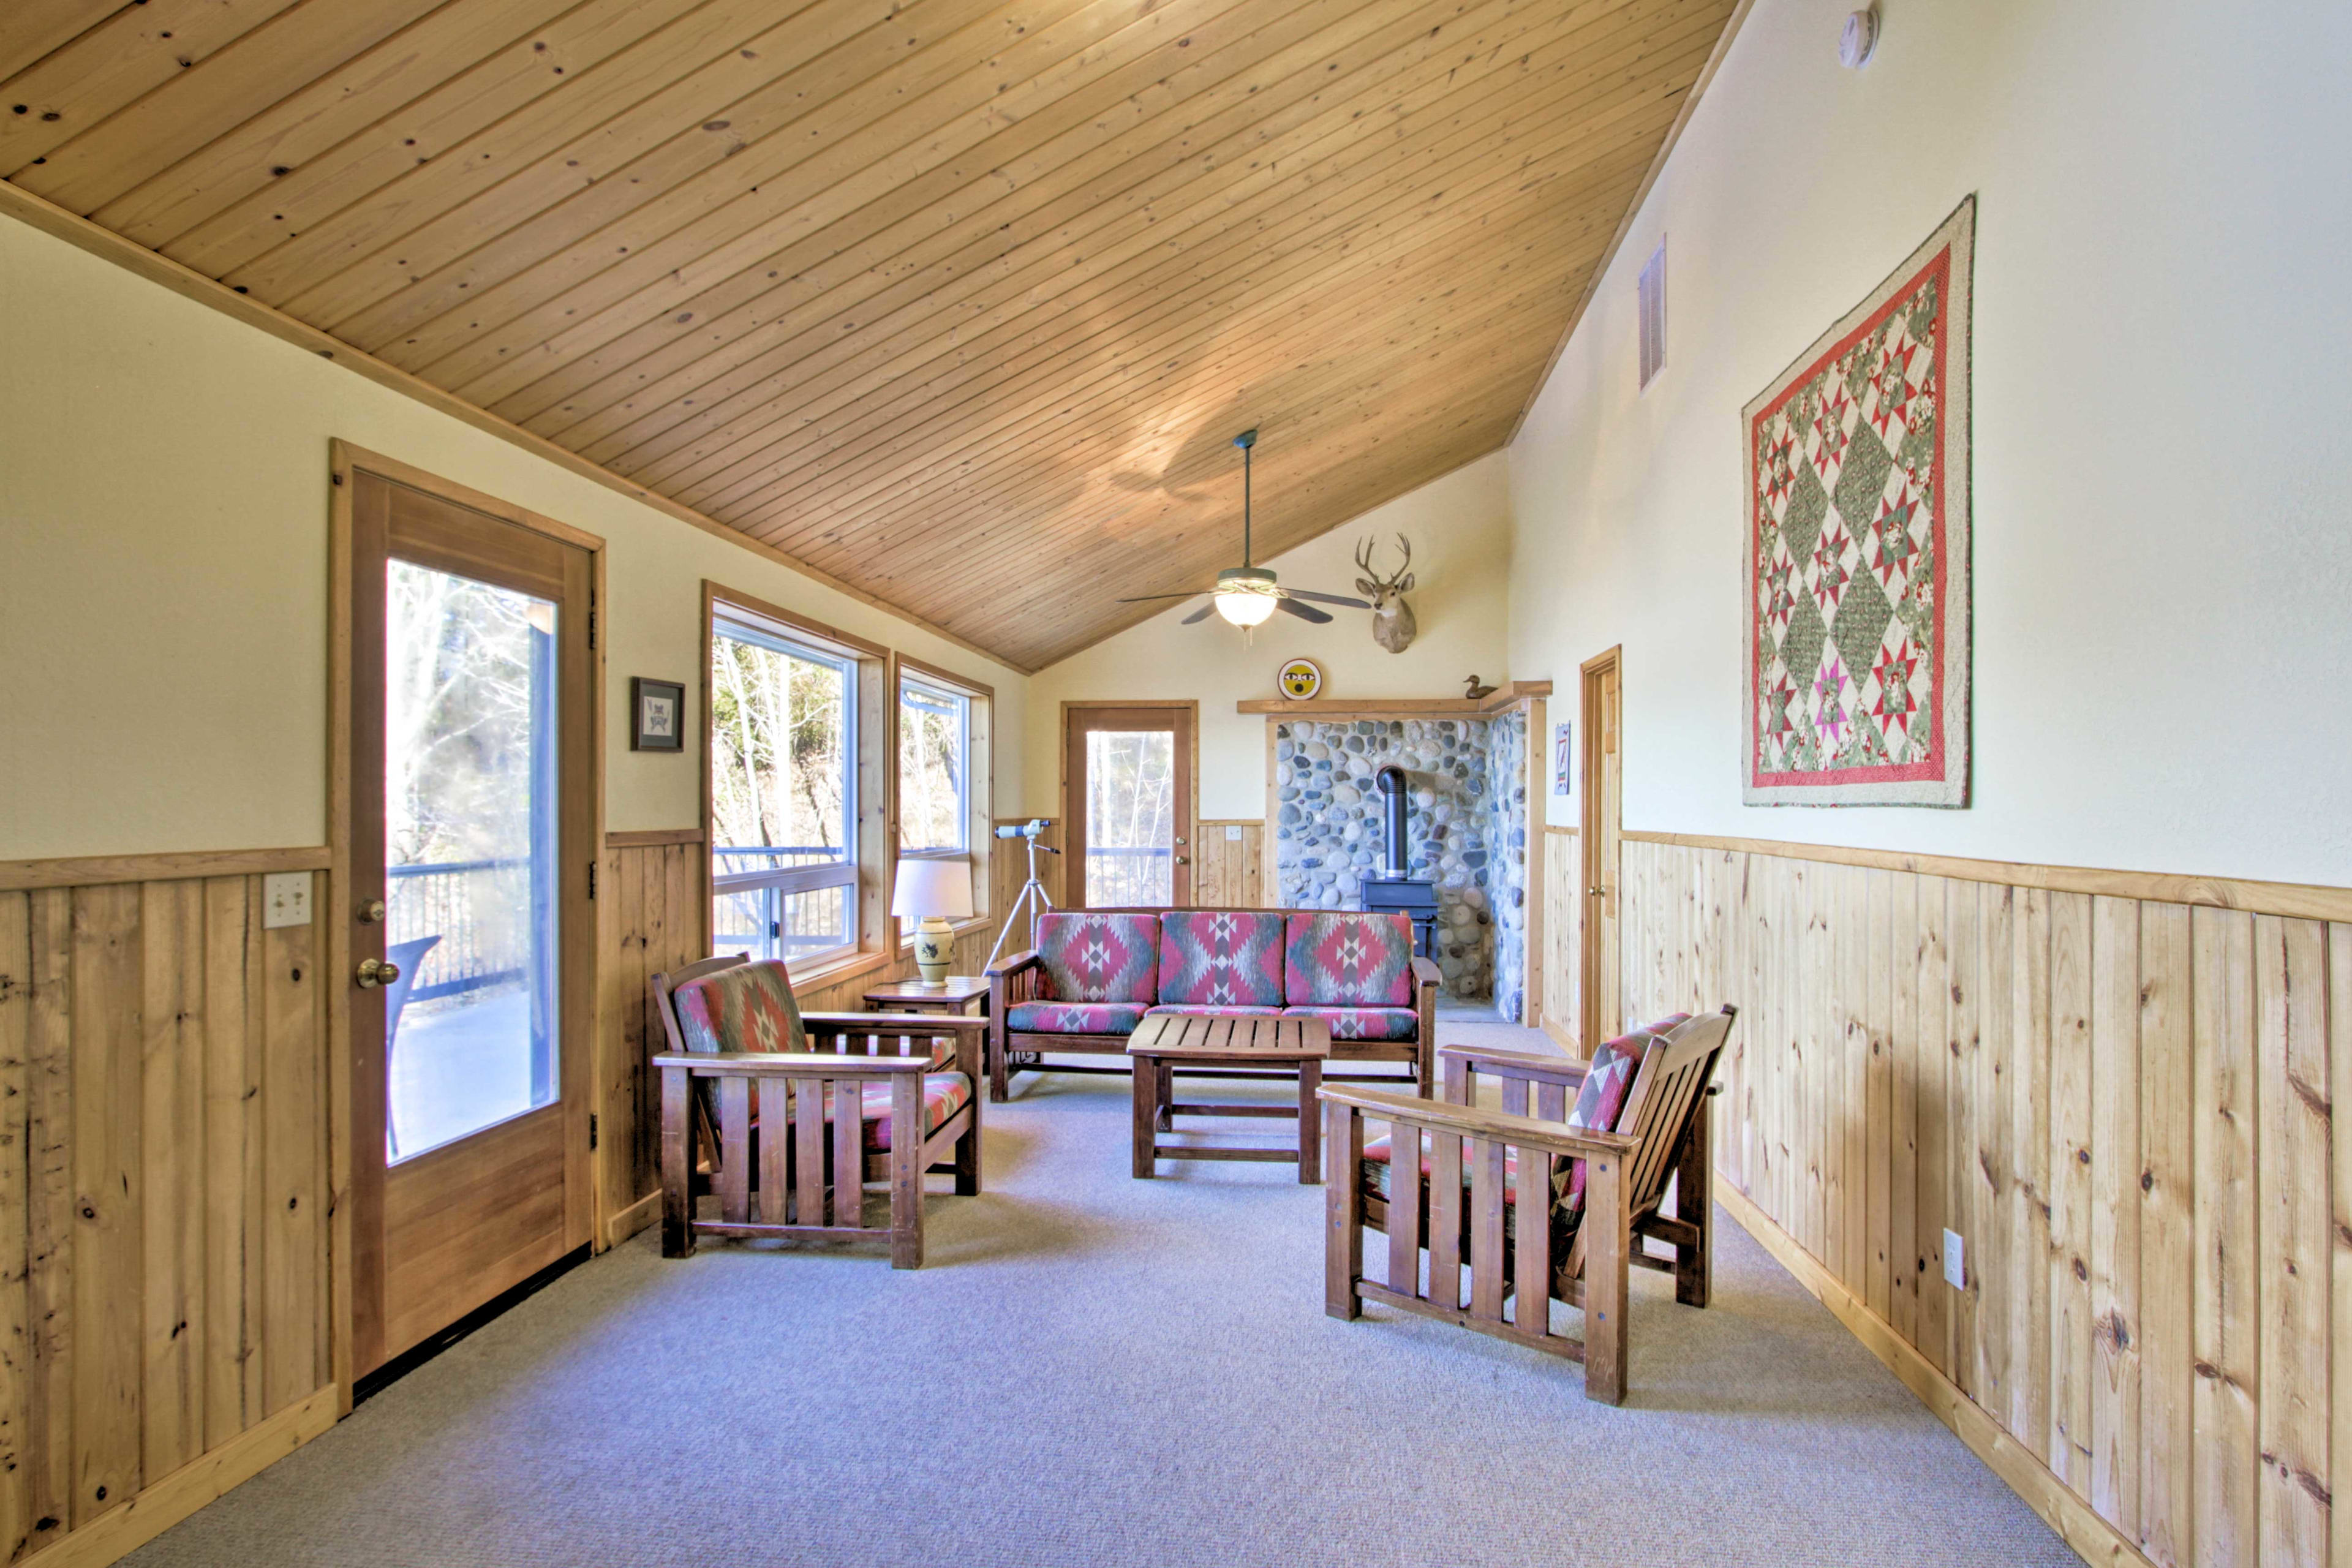 The upstairs seating area boasts a telescope, wood-burning stove & deck access.